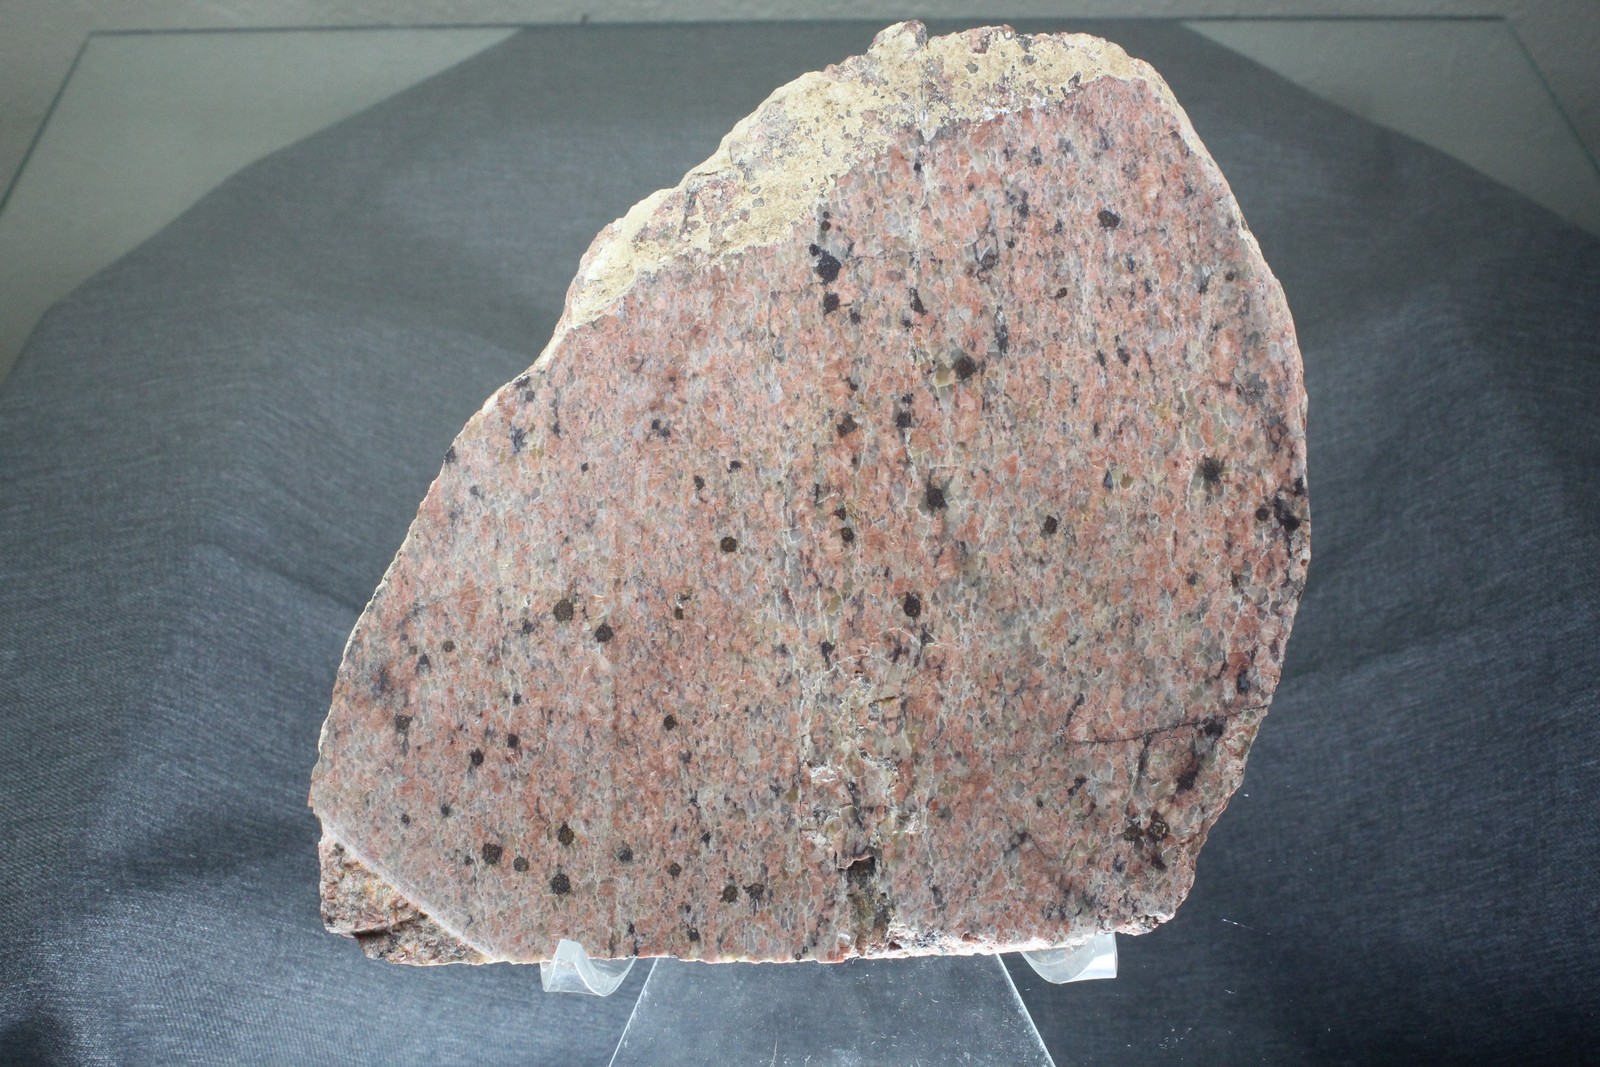 Typical-Cut-Rock-From-Mountain-Pass-District-With-Radioactives